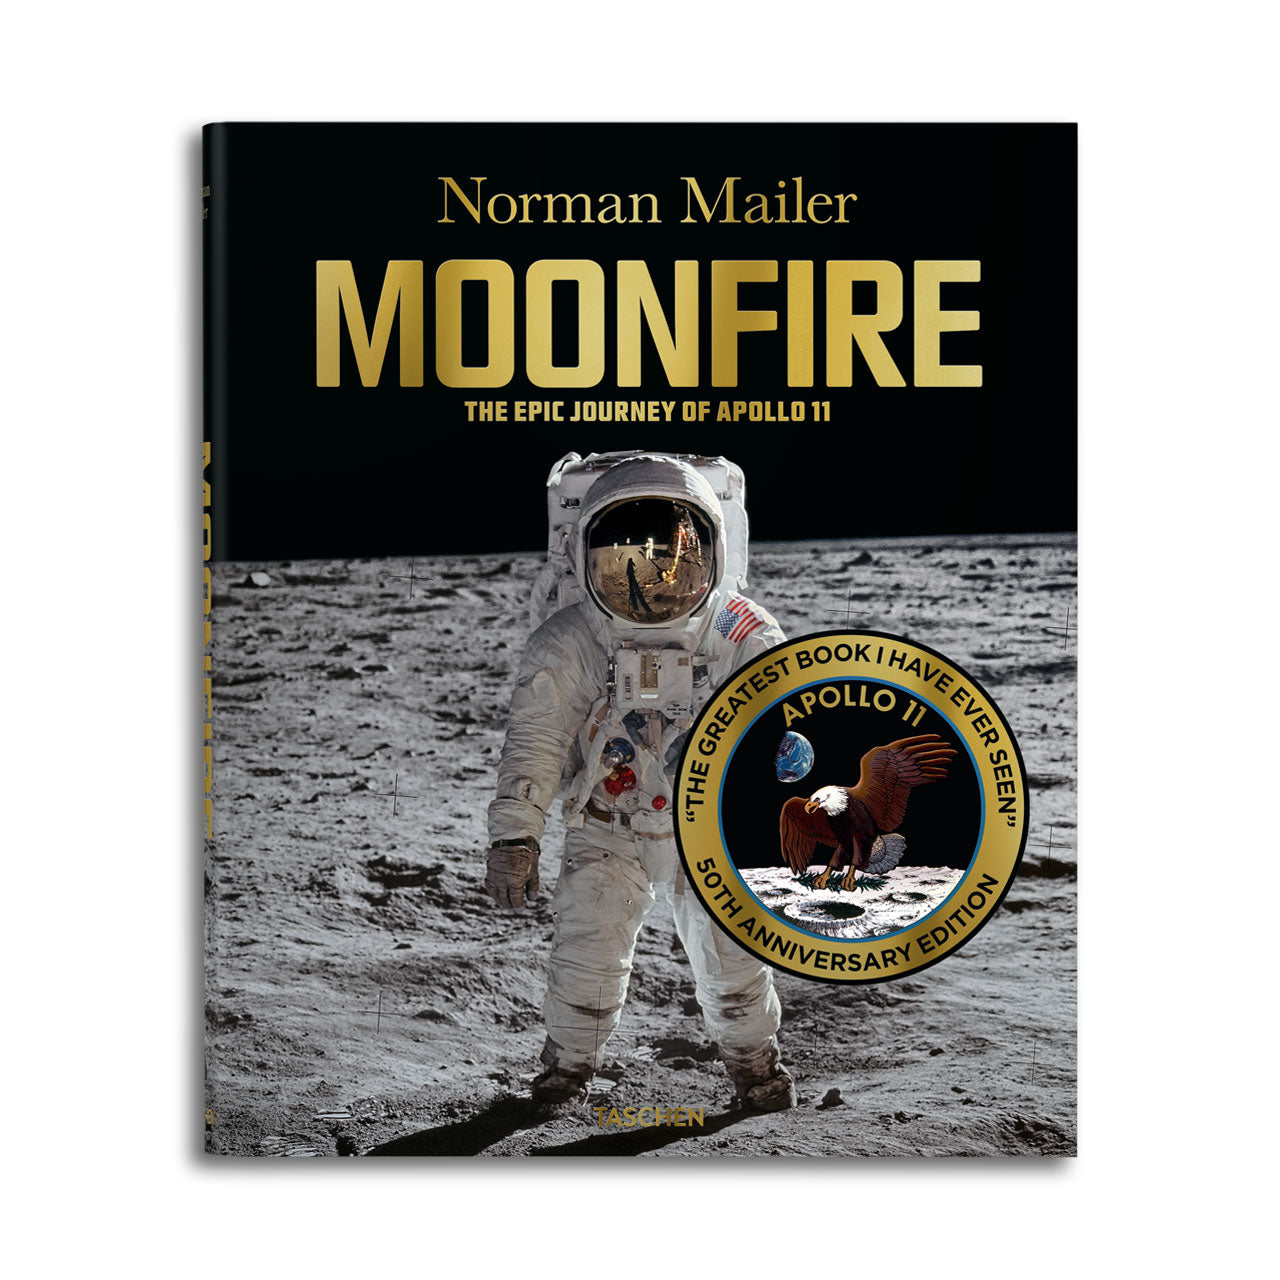 MoonFire 50th Anniversary Edition